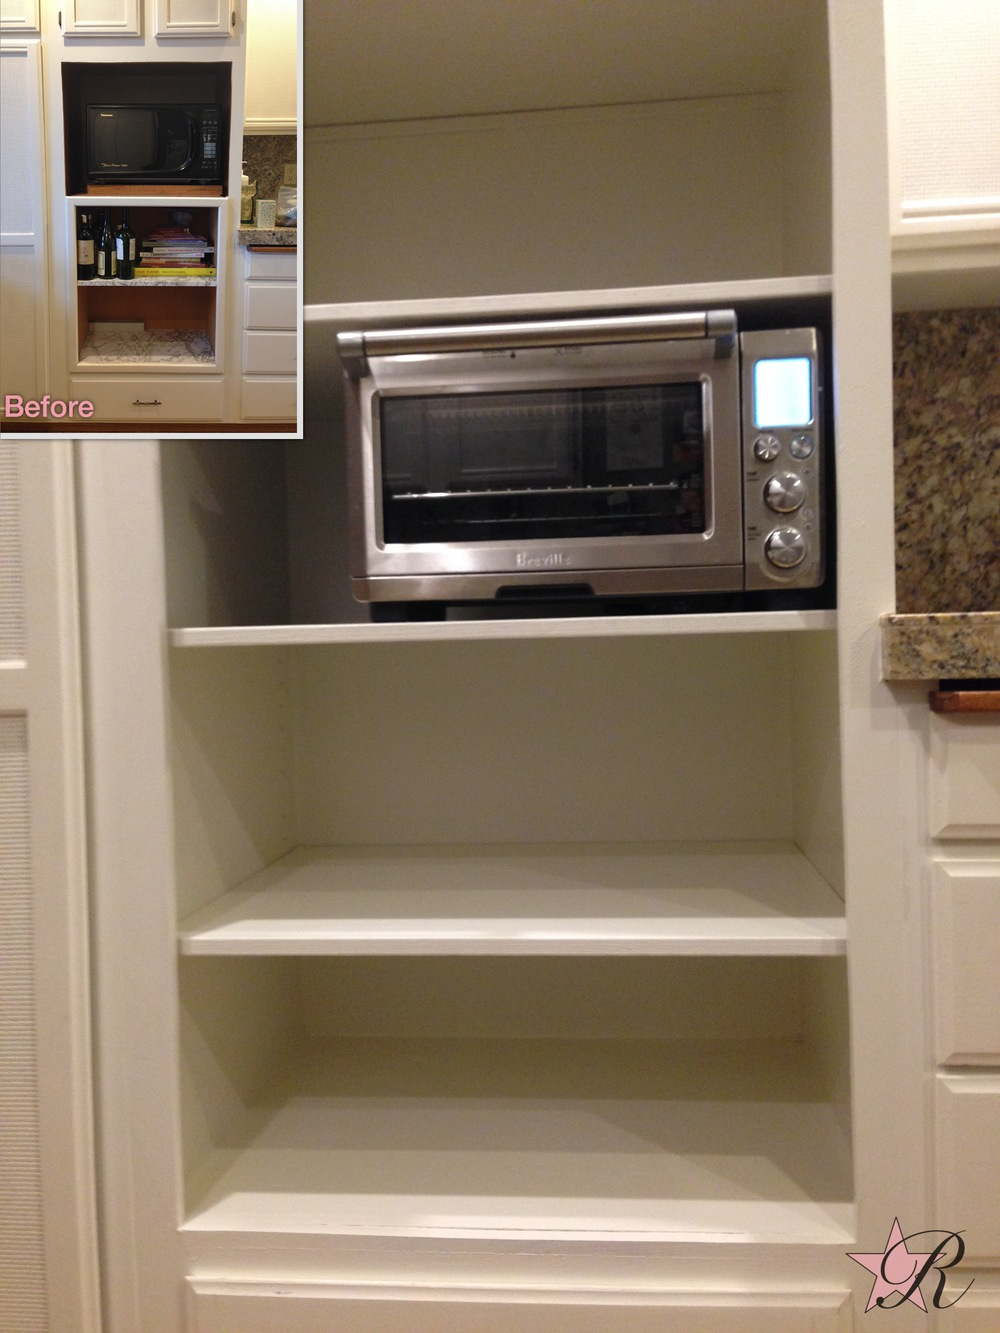 With the new microwave hood fan, there was no need of this microwave so Rockstar Remodel remodeled the shelves to better fit the client's needs and look more modern.